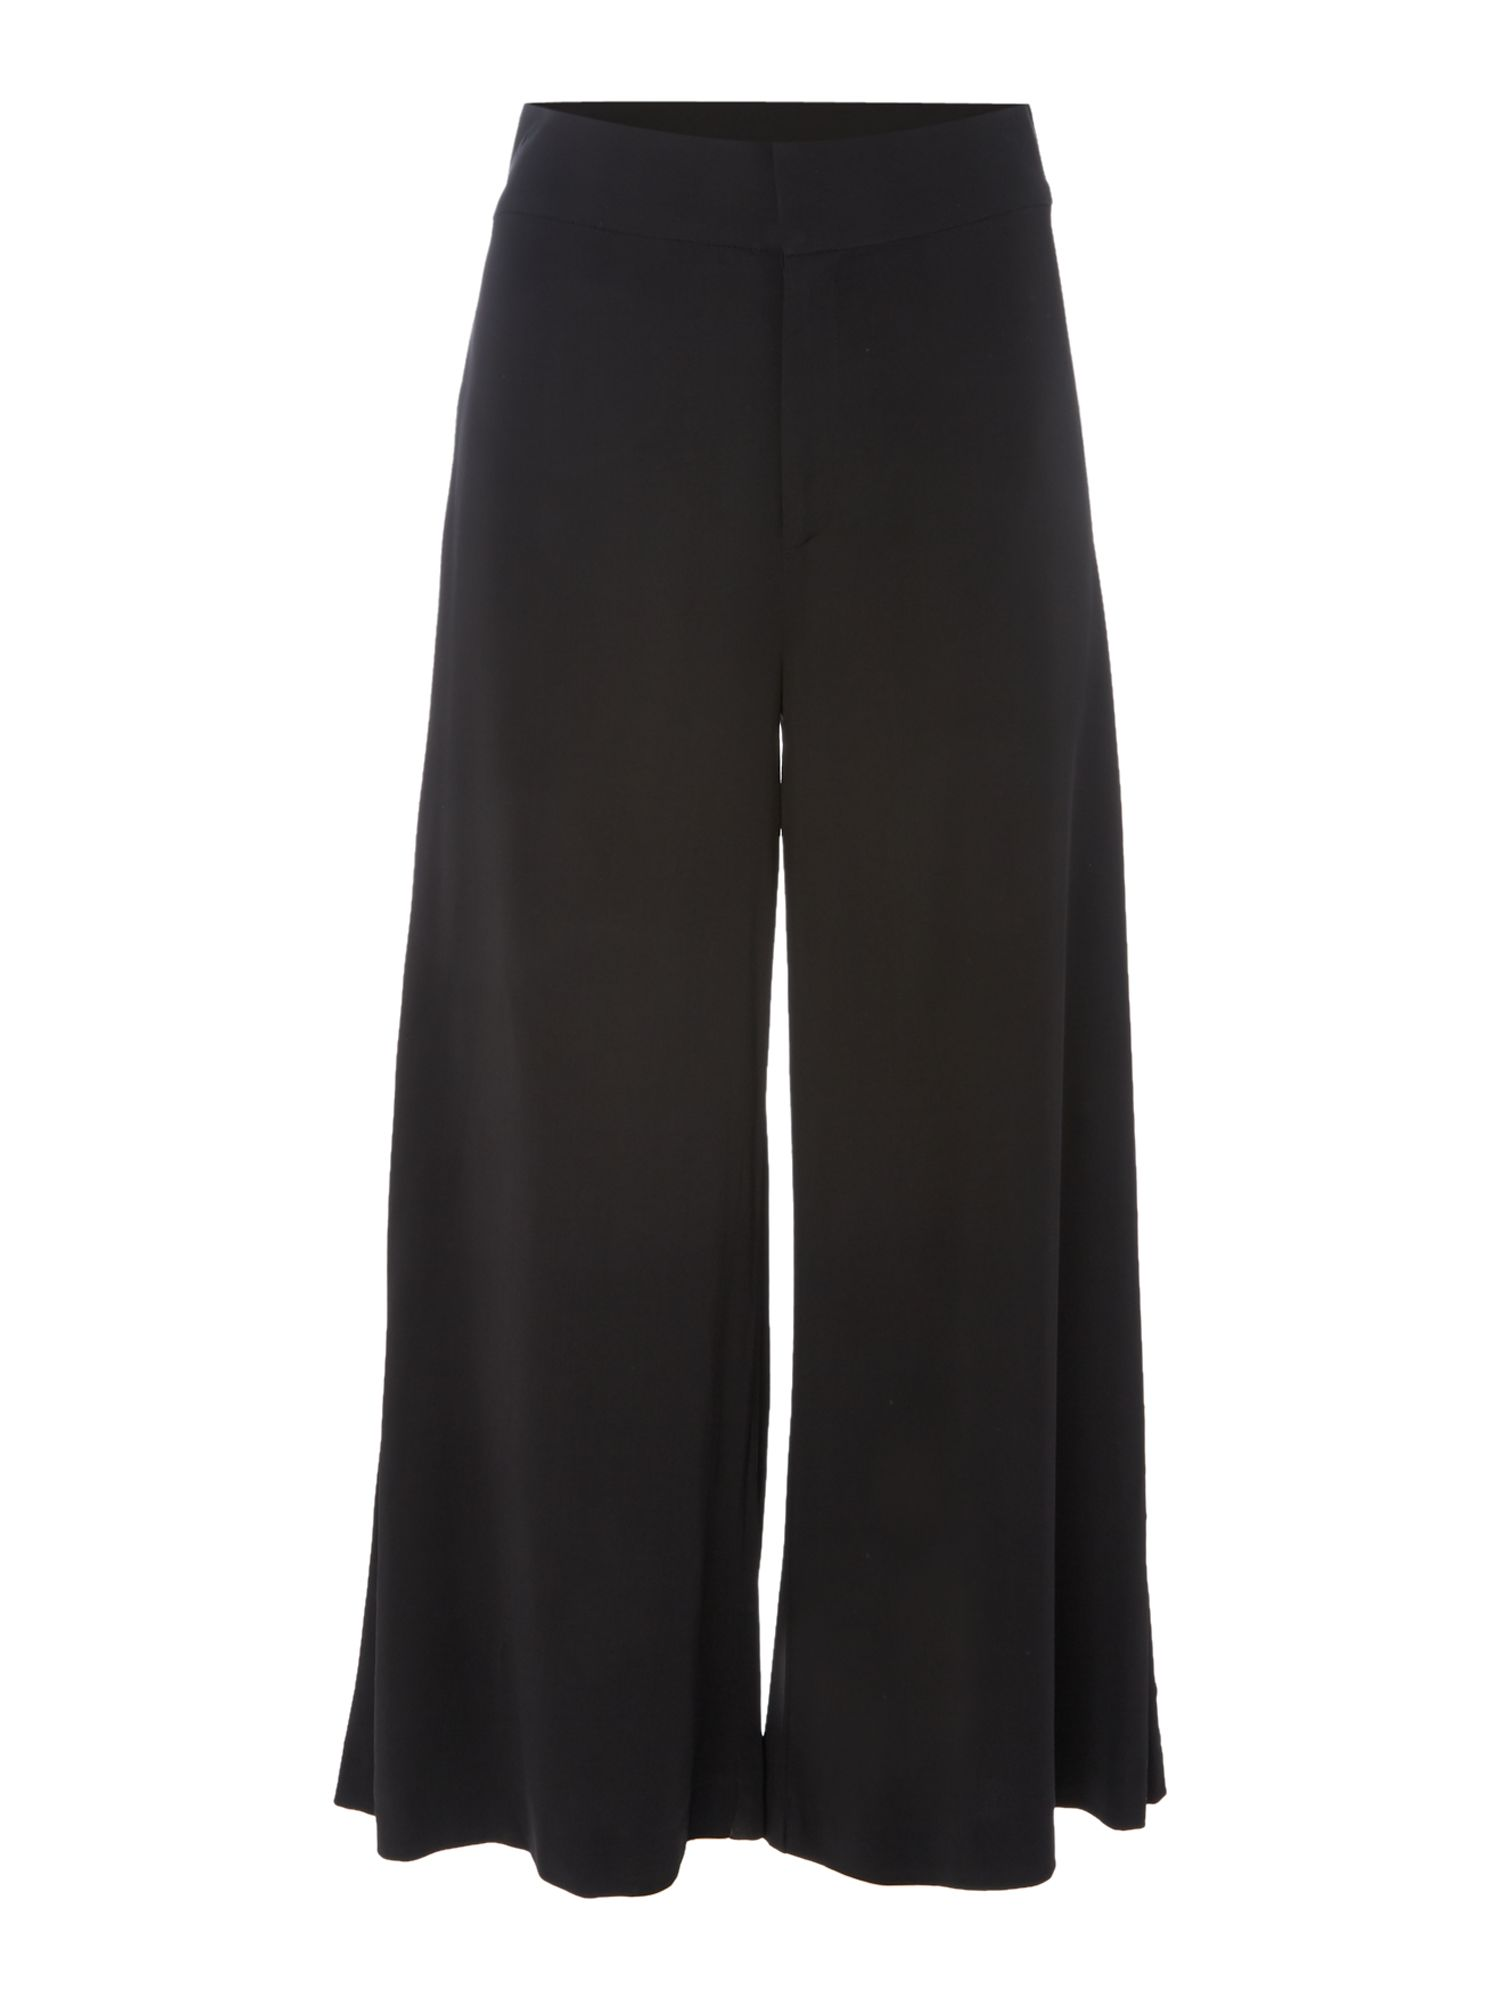 1940s Style Pants & Overalls- Wide Leg, High Waist InWear Dawn Culotte Pants £62.97 AT vintagedancer.com